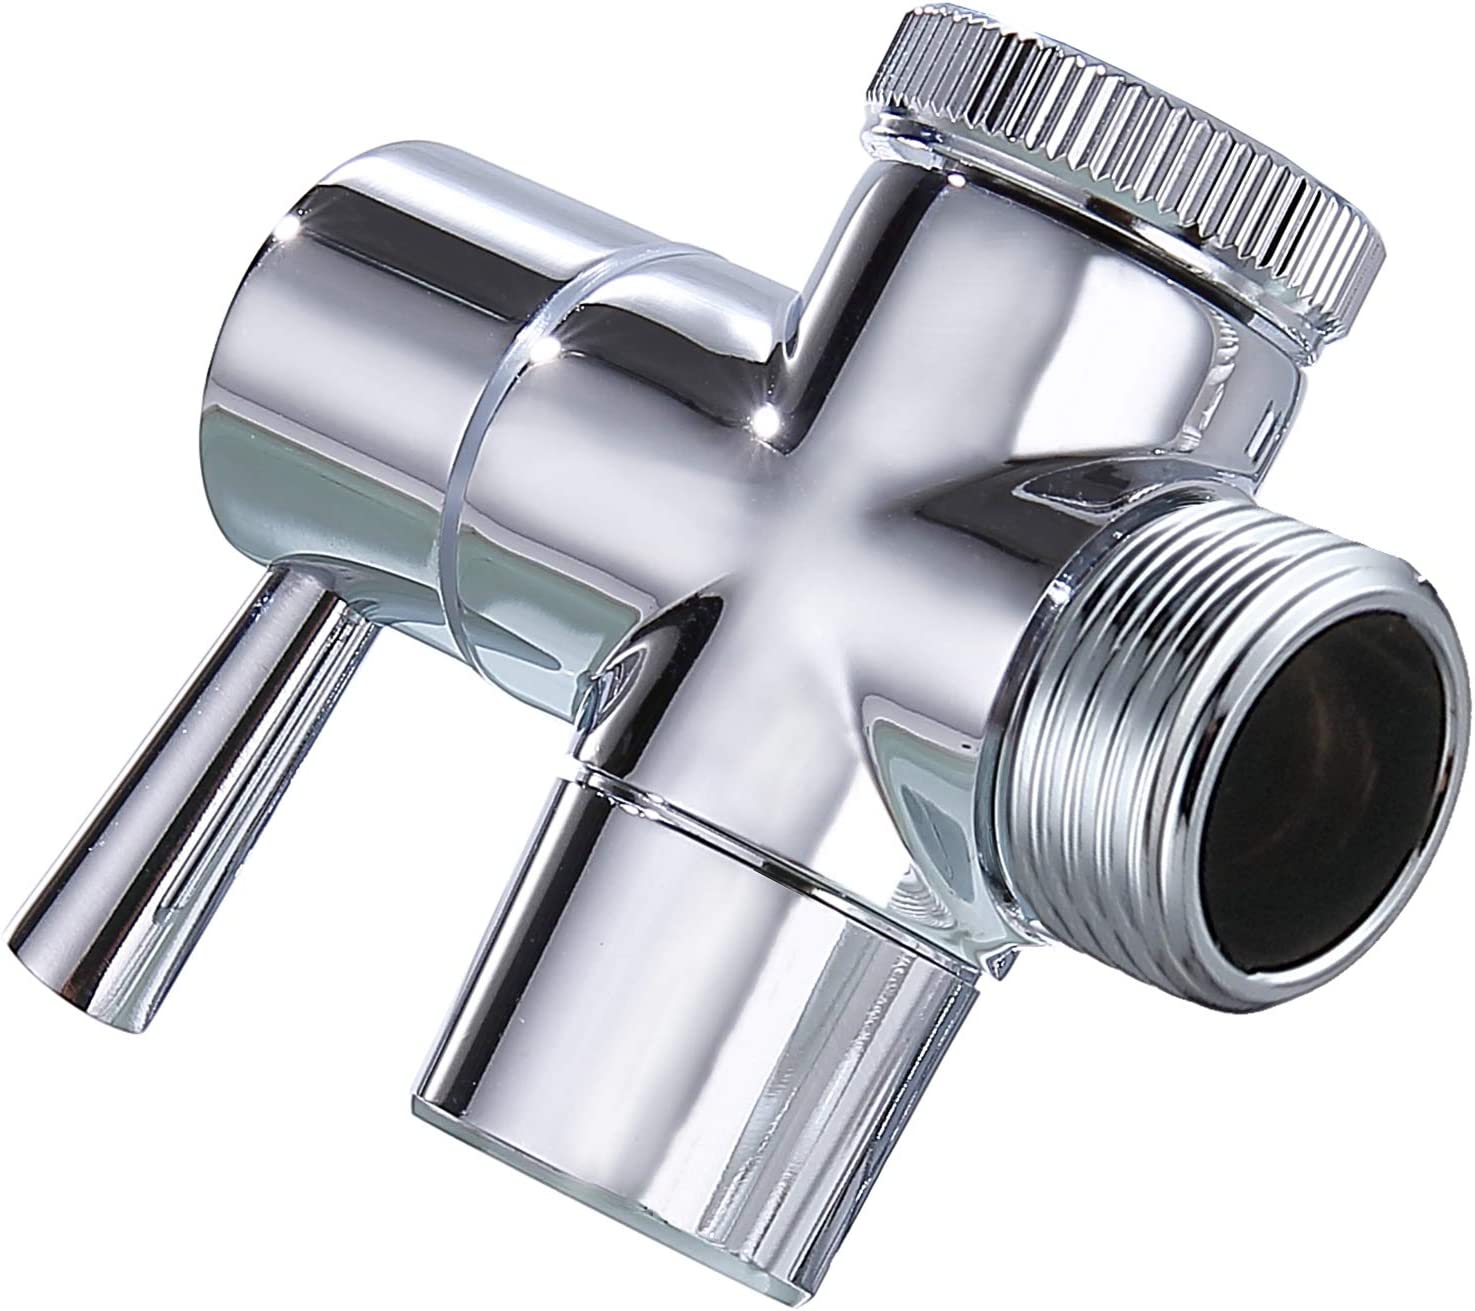 All Metal Faucet Diverter Valve, Faucet Adapter for Hose Connection, Faucet Connector for Water Distribution, with Aerator and External Thread Adapter, Suitable for Bathroom/Kitchen Faucet (Chrome)